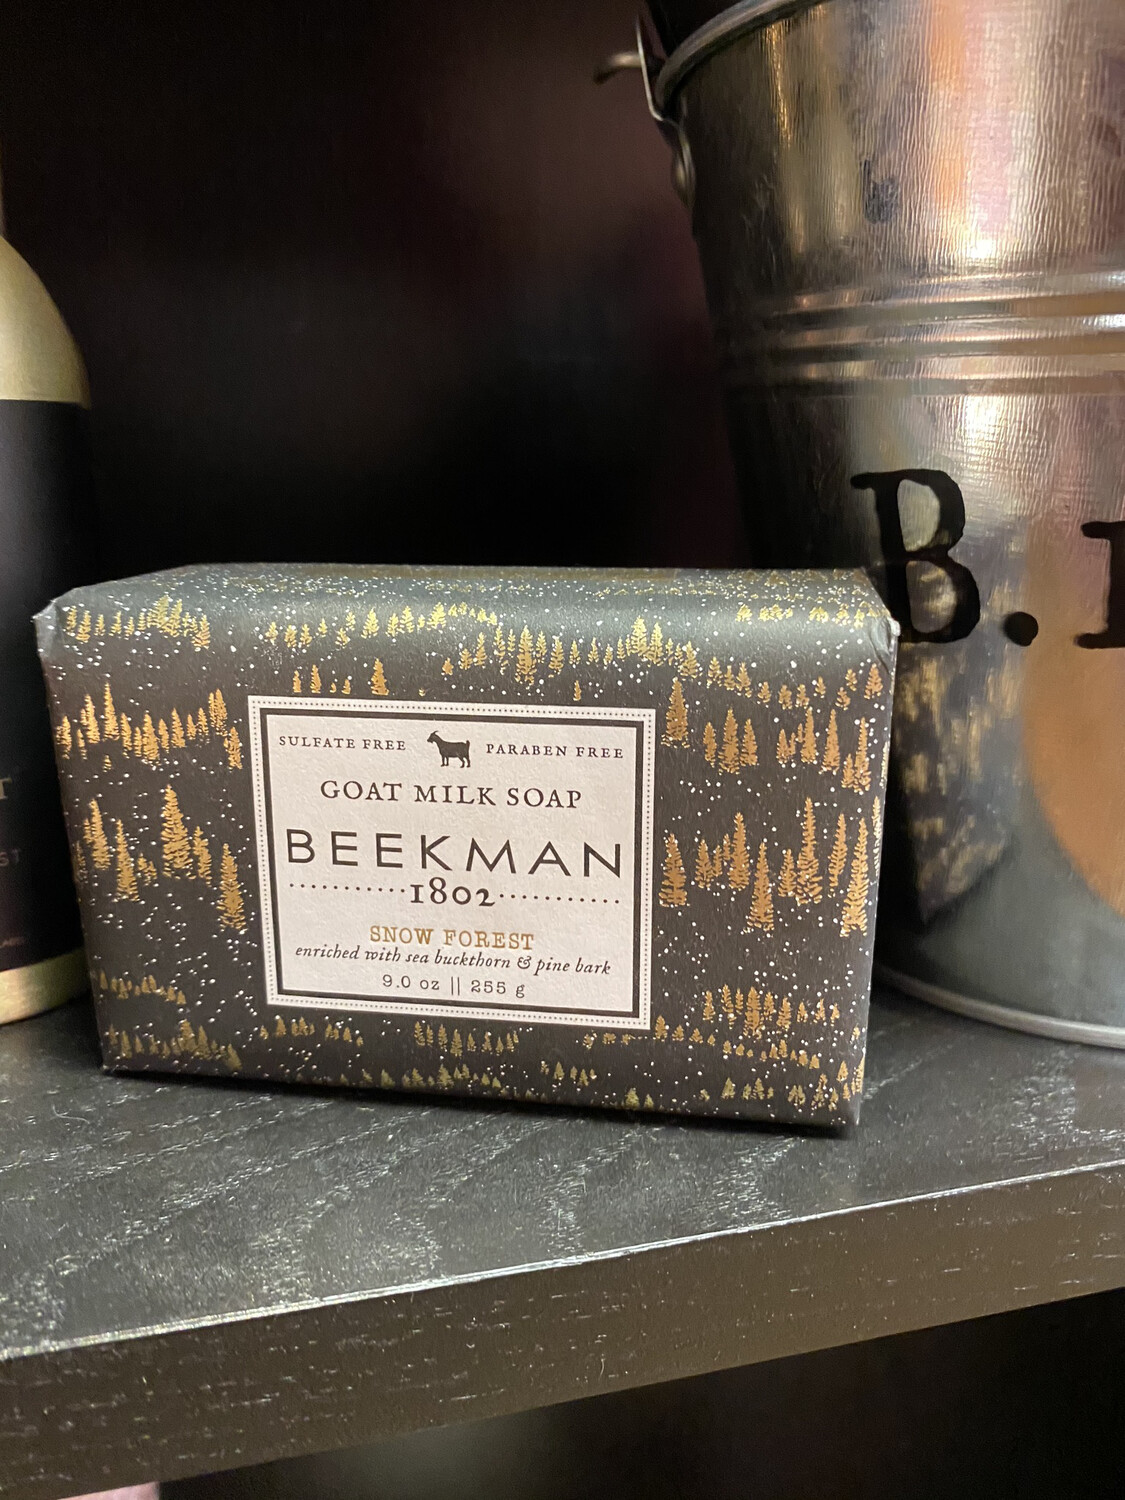 Beekman Snow Forest Soap Enriched With Buckthorn And Pine Bark